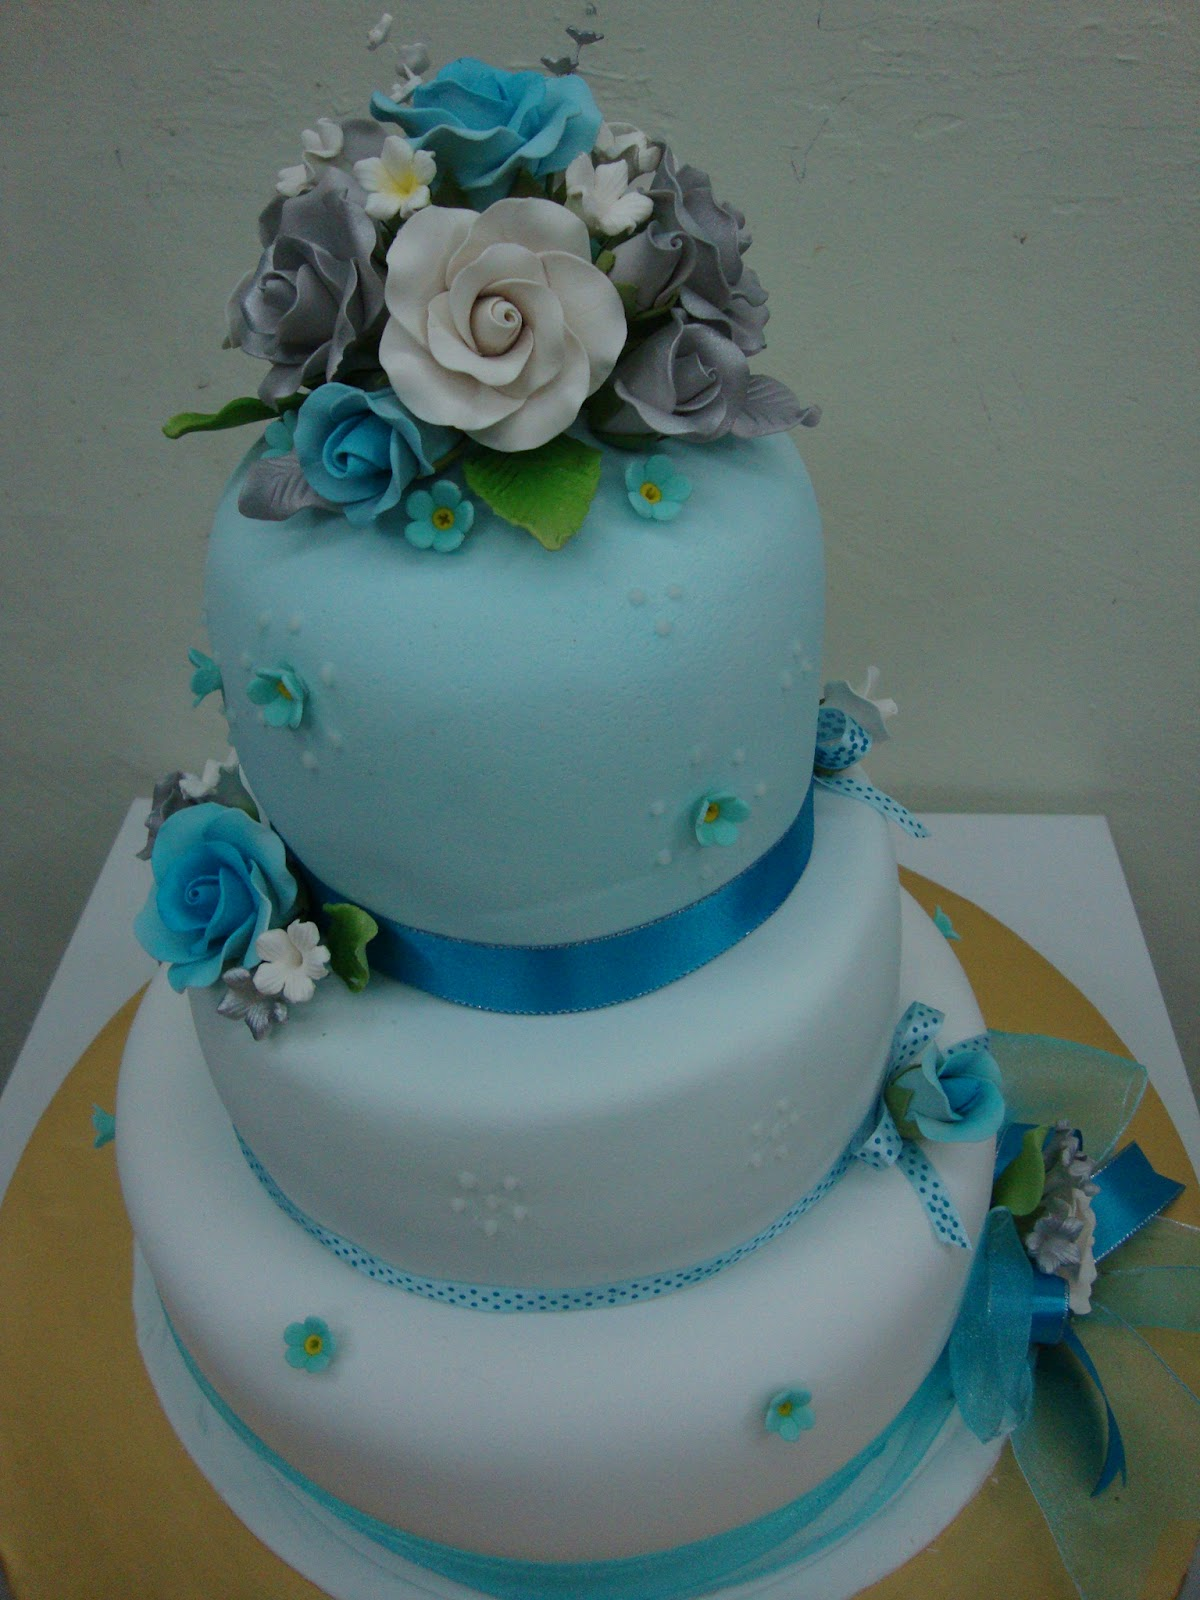 ninie cakes house Blue and Turquoise 3 Tier Wedding Cakes